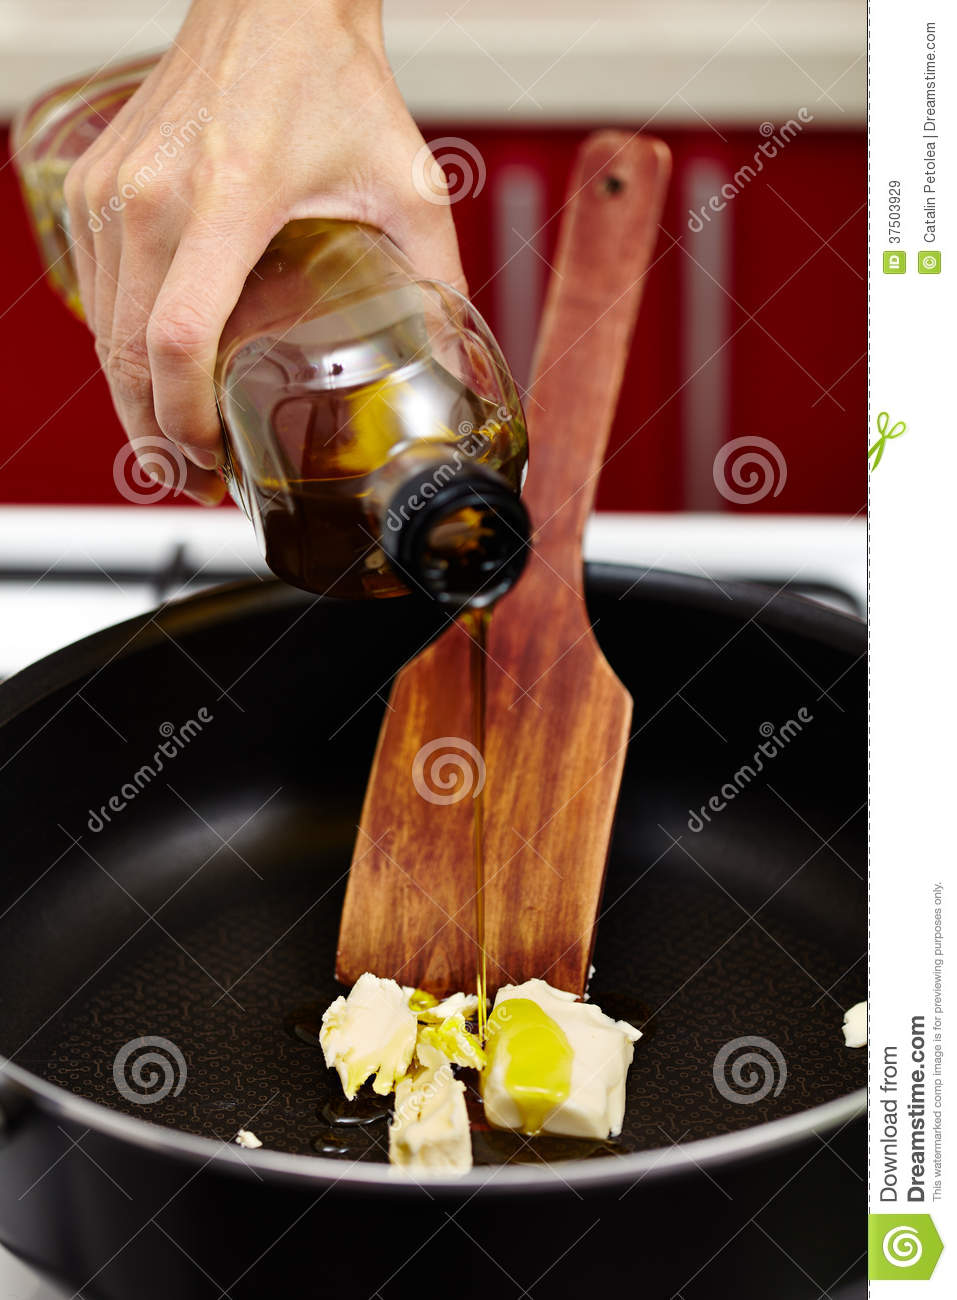 Pouring olive oil over melting butter